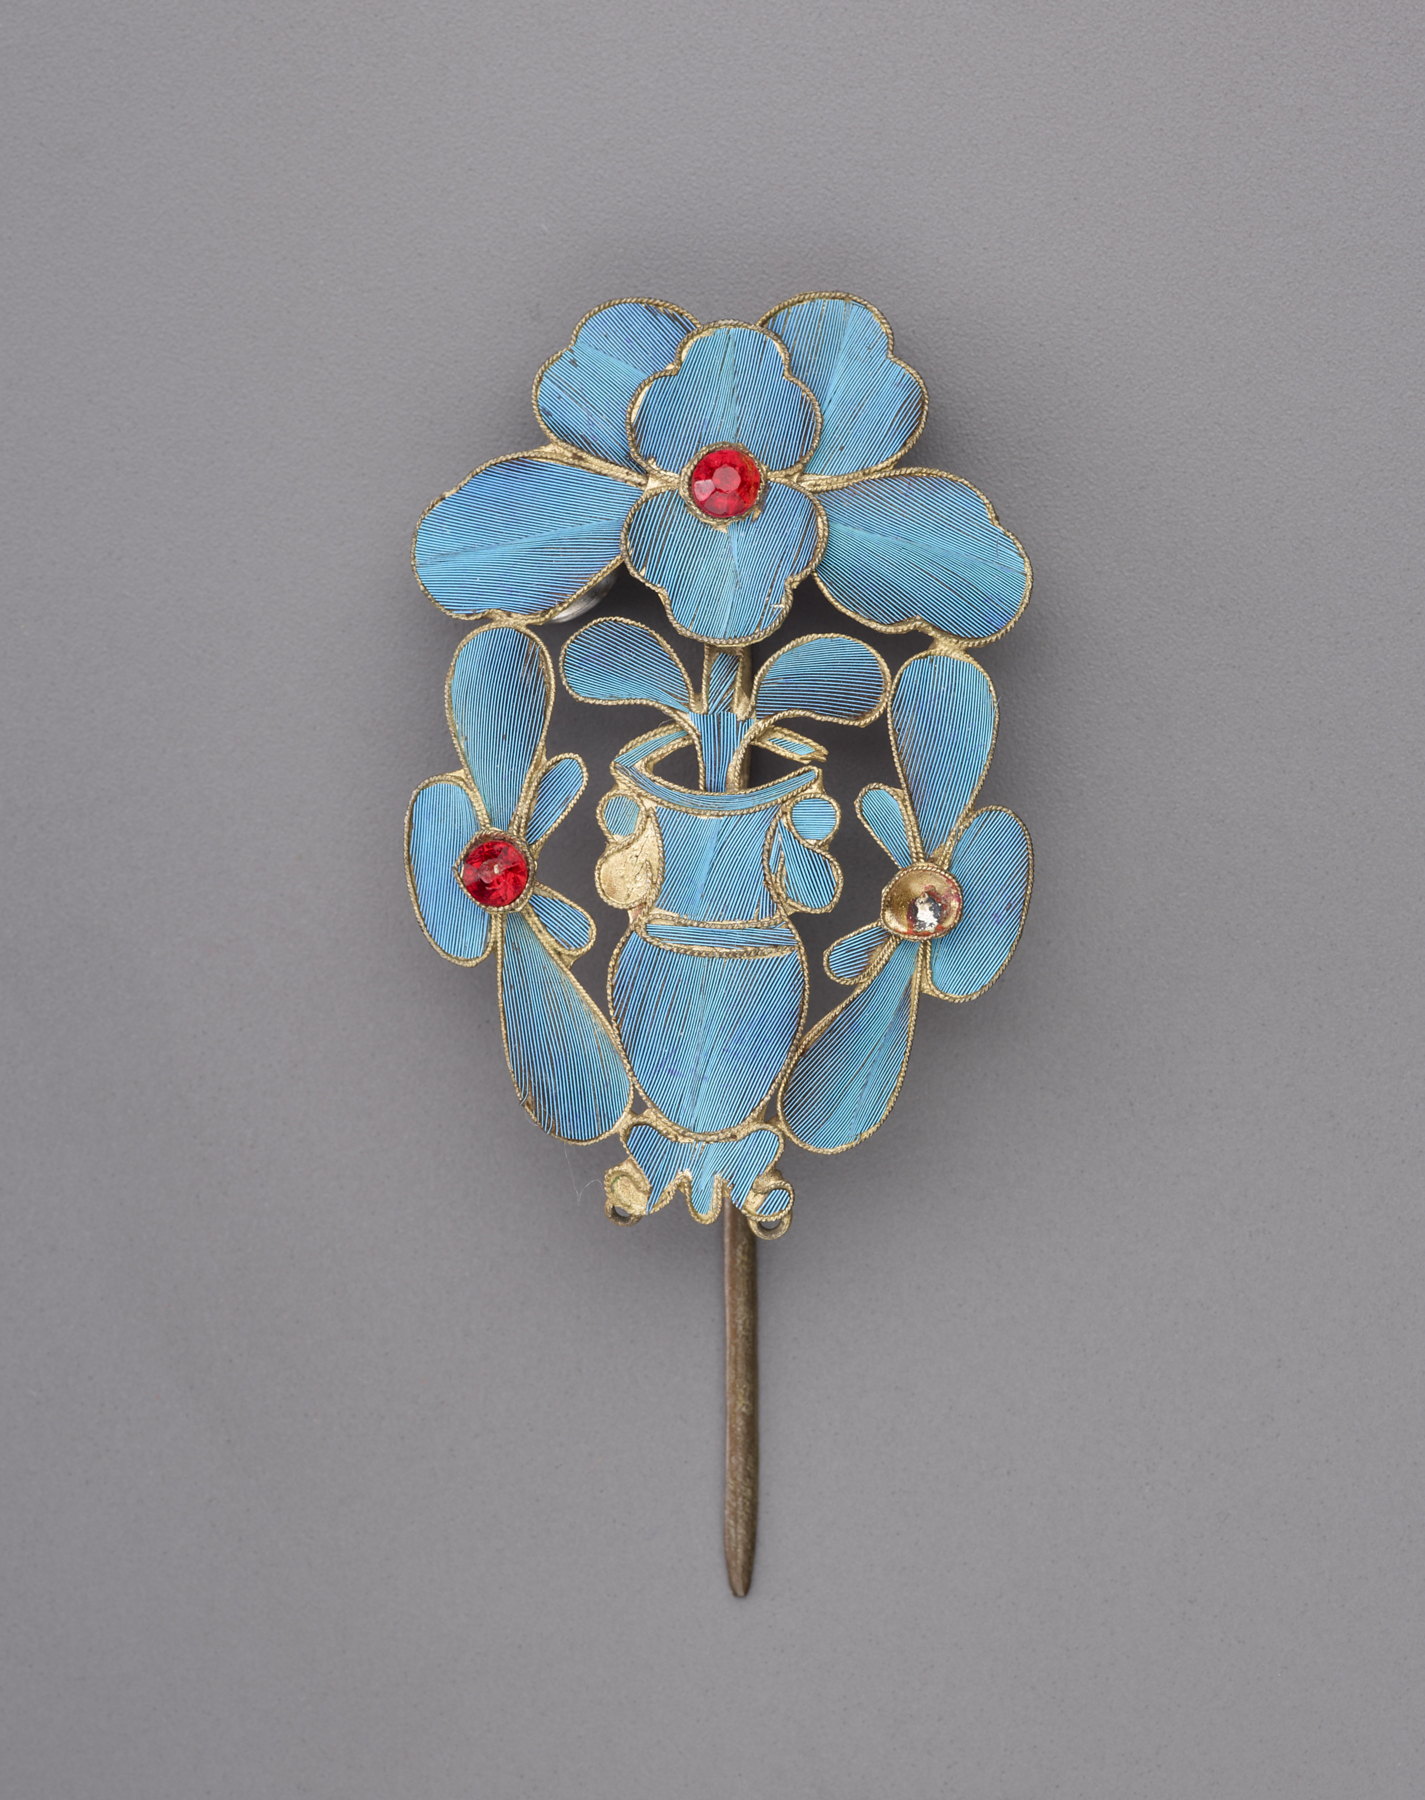 Single-prong kingfisher feather hairpin with vase and floral motifs